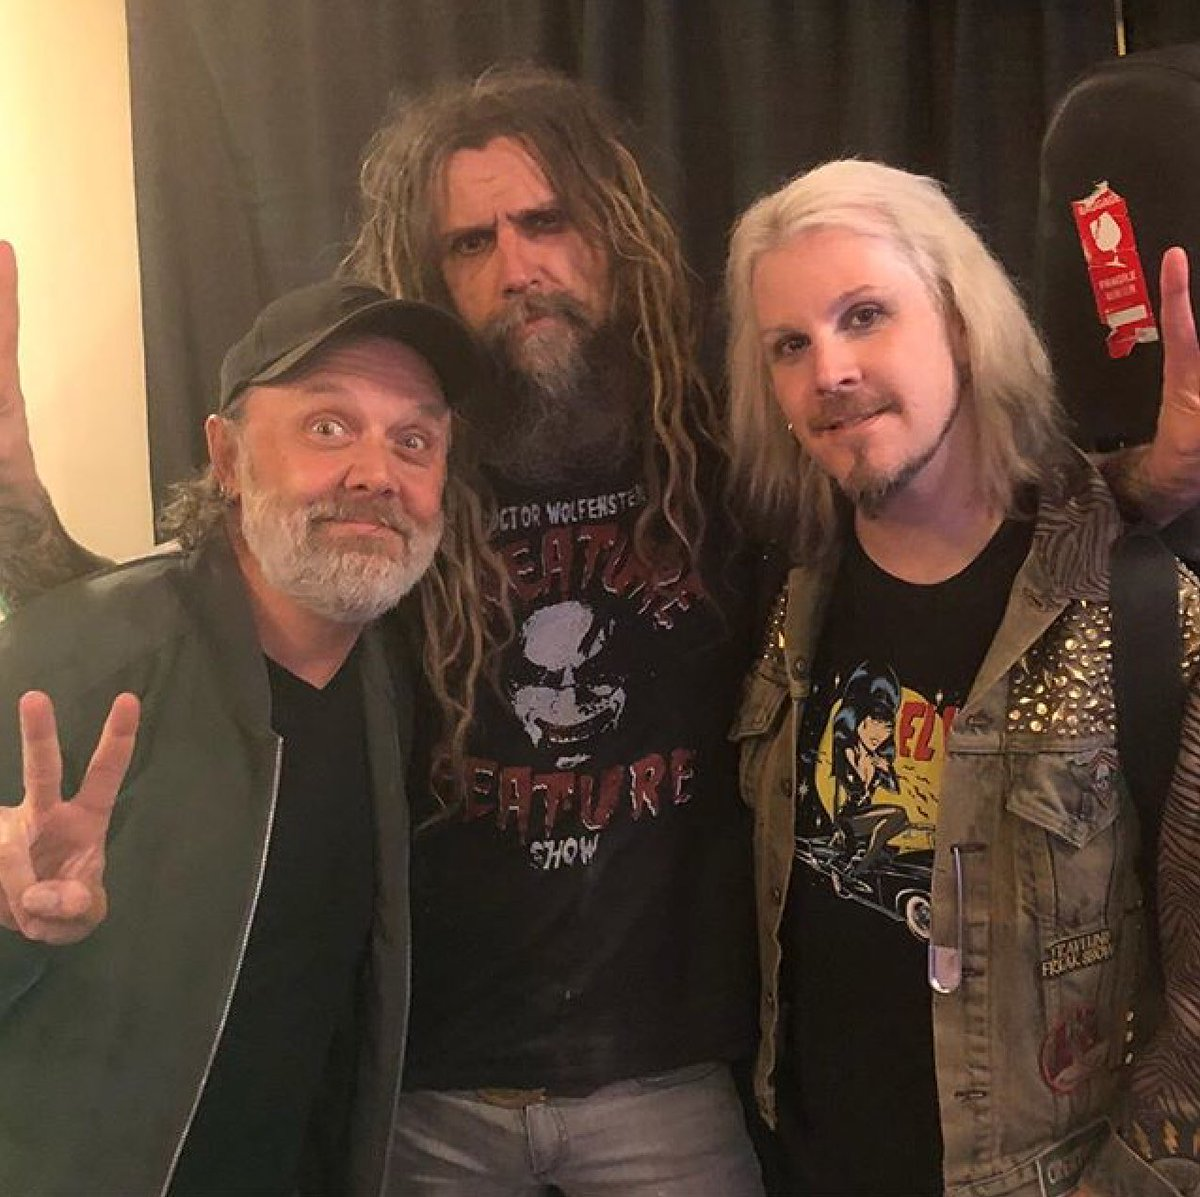 """John 5 on Twitter: """"Got to see @larsulrich tonight at the show. Fun times  @RobZombie #twinsofeviltour #robzombie #john5 #larsulrich #Metallica  #tourlife… https://t.co/JIzemtoqf6"""""""